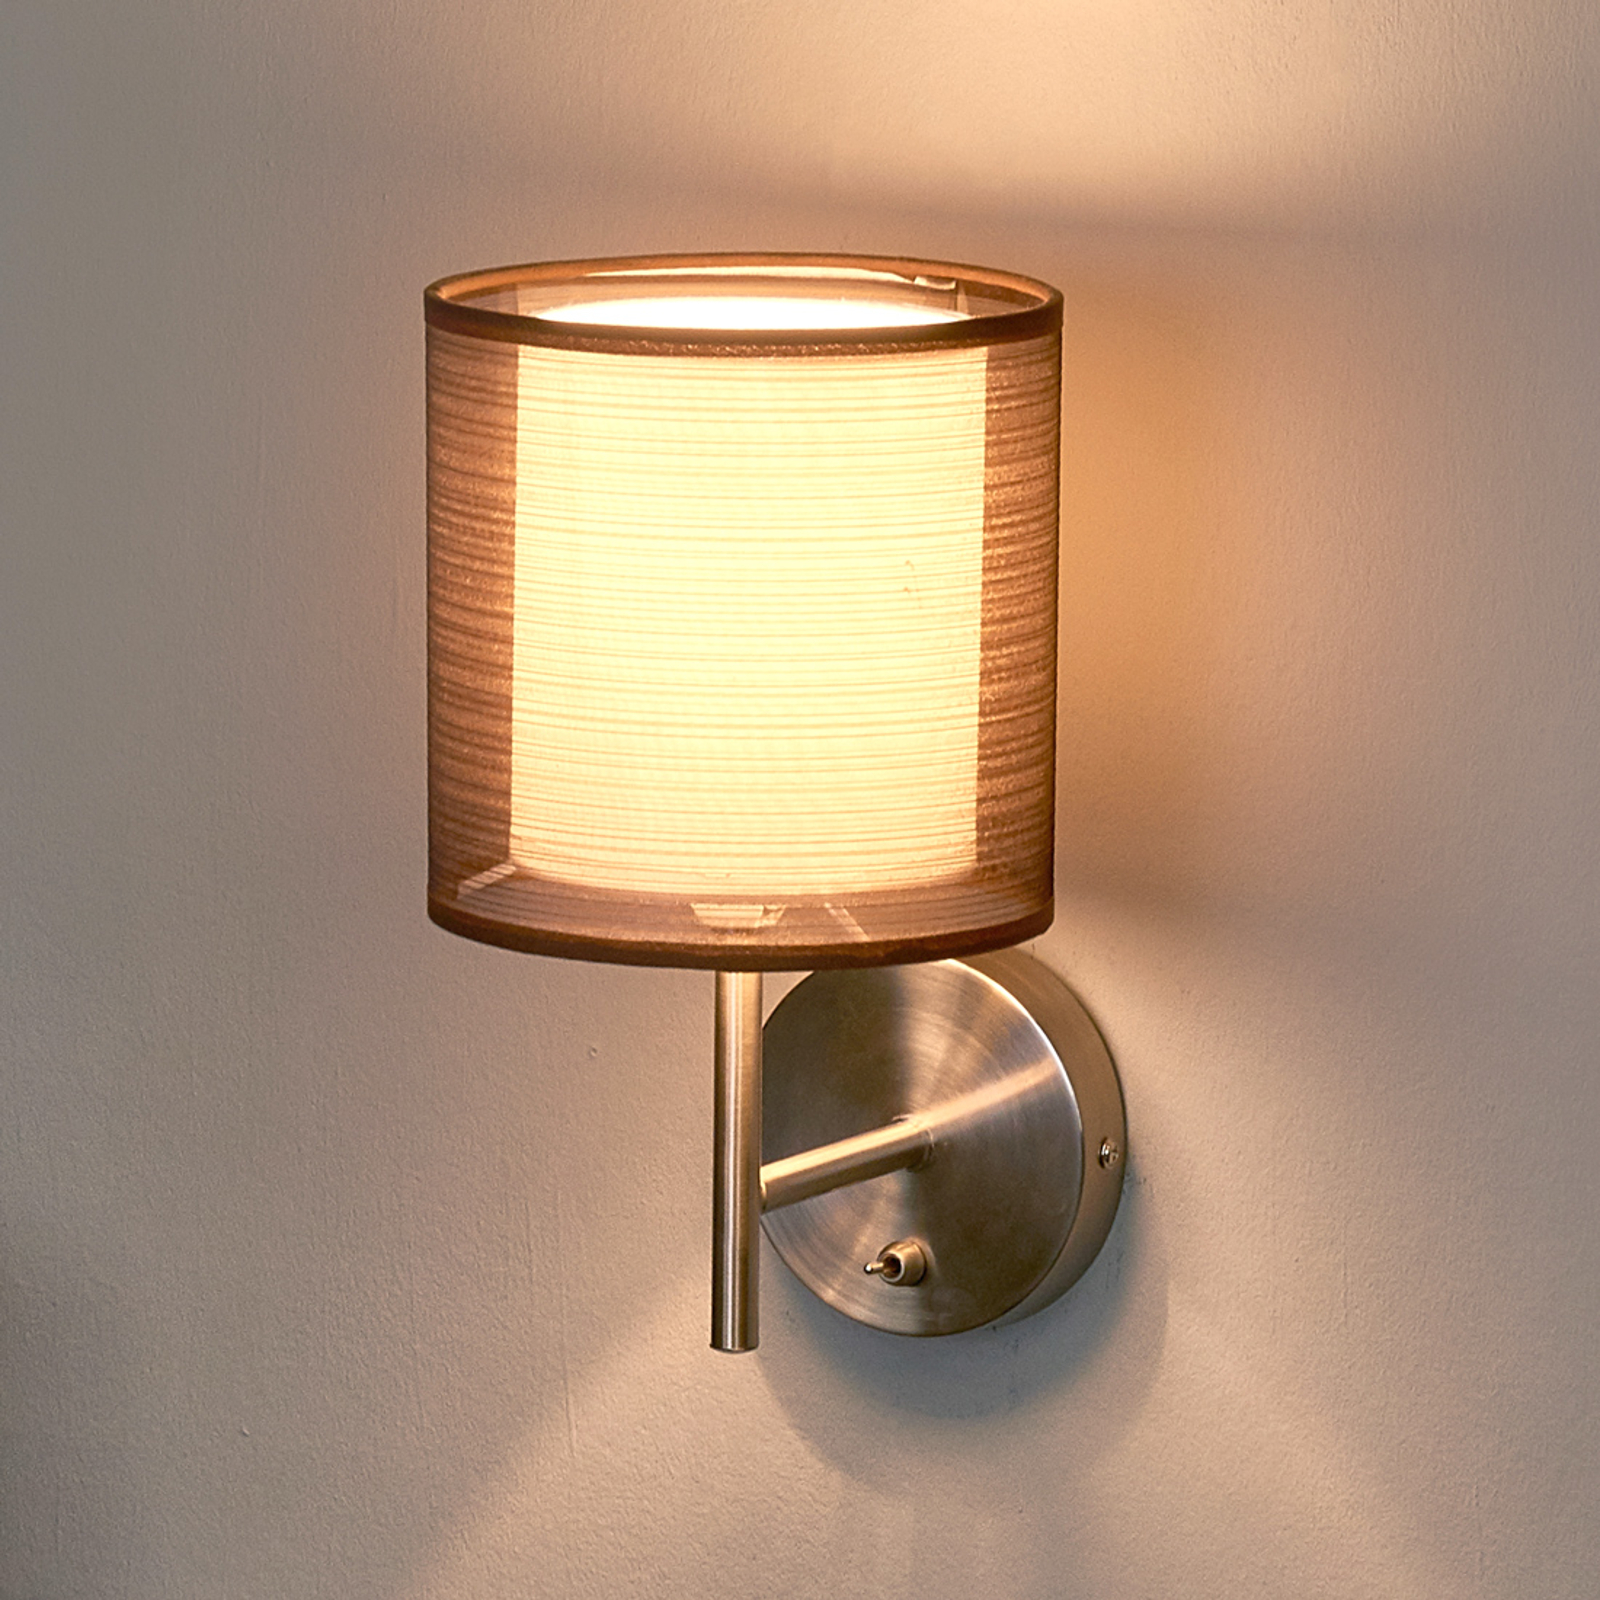 Nica wall light in brown_4018016_1